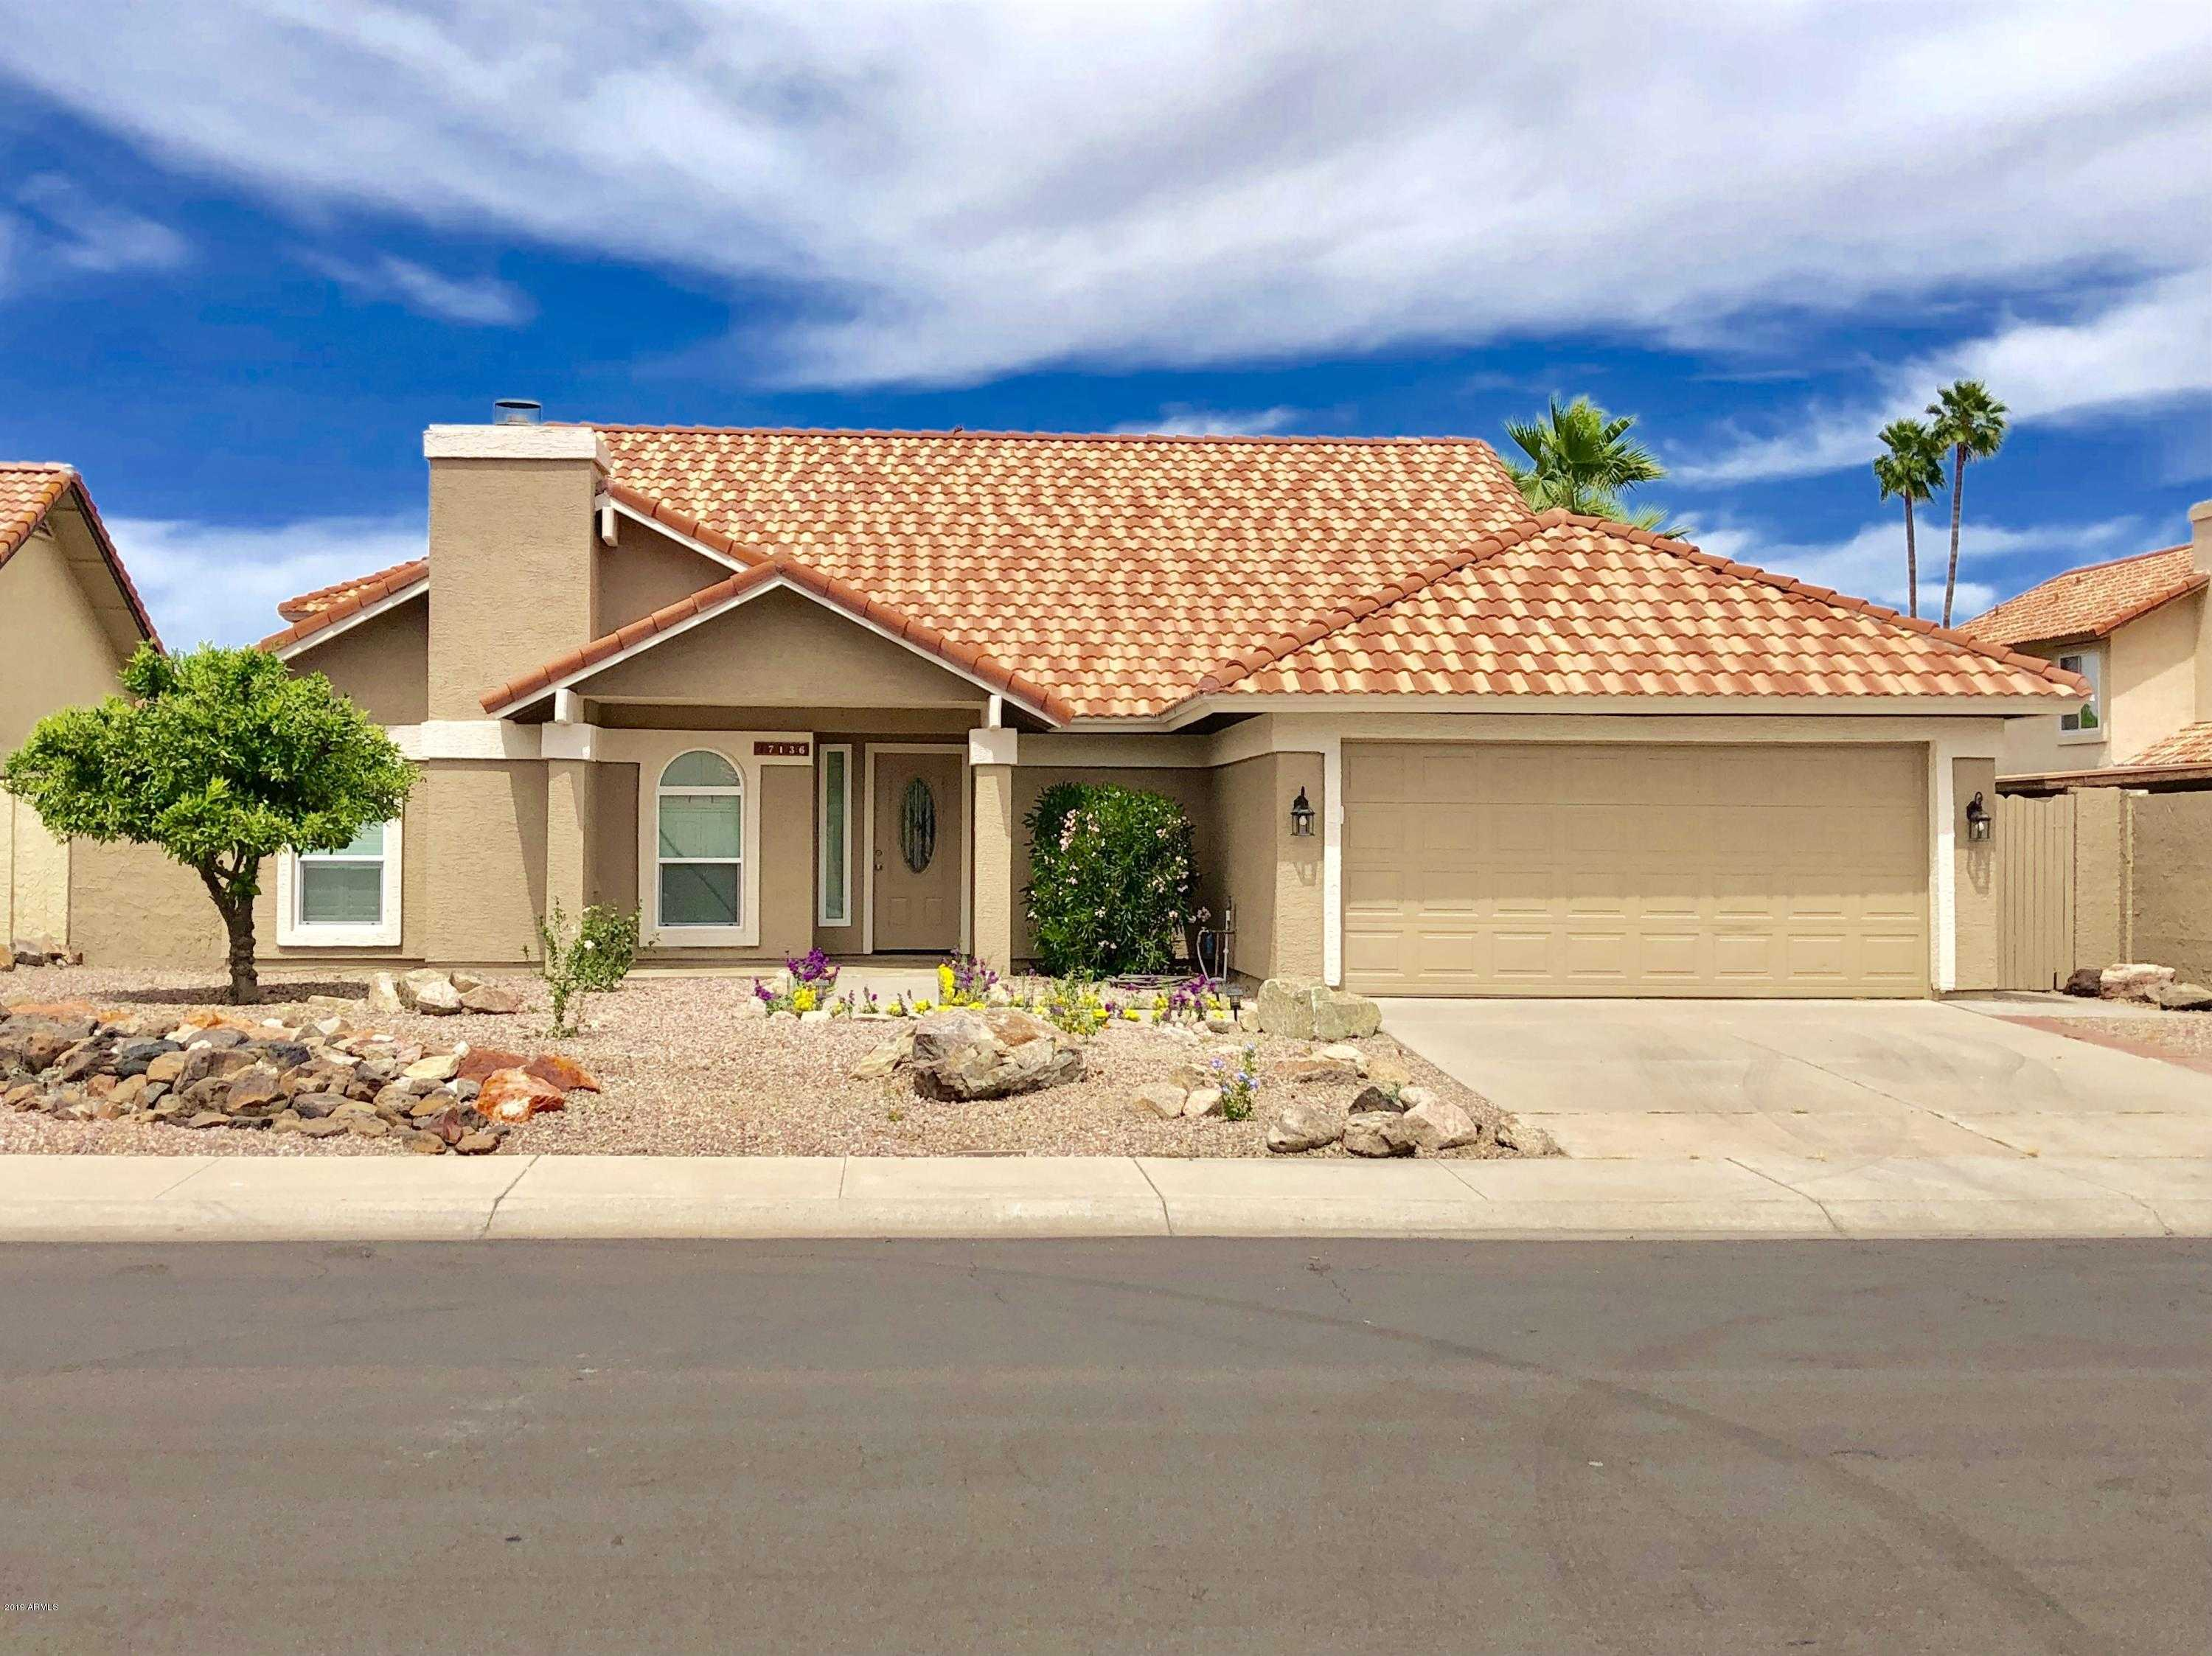 $315,000 - 3Br/2Ba - Home for Sale in Arrowhead Ranch 8 Amd Lt 1-181 Tr A, Glendale